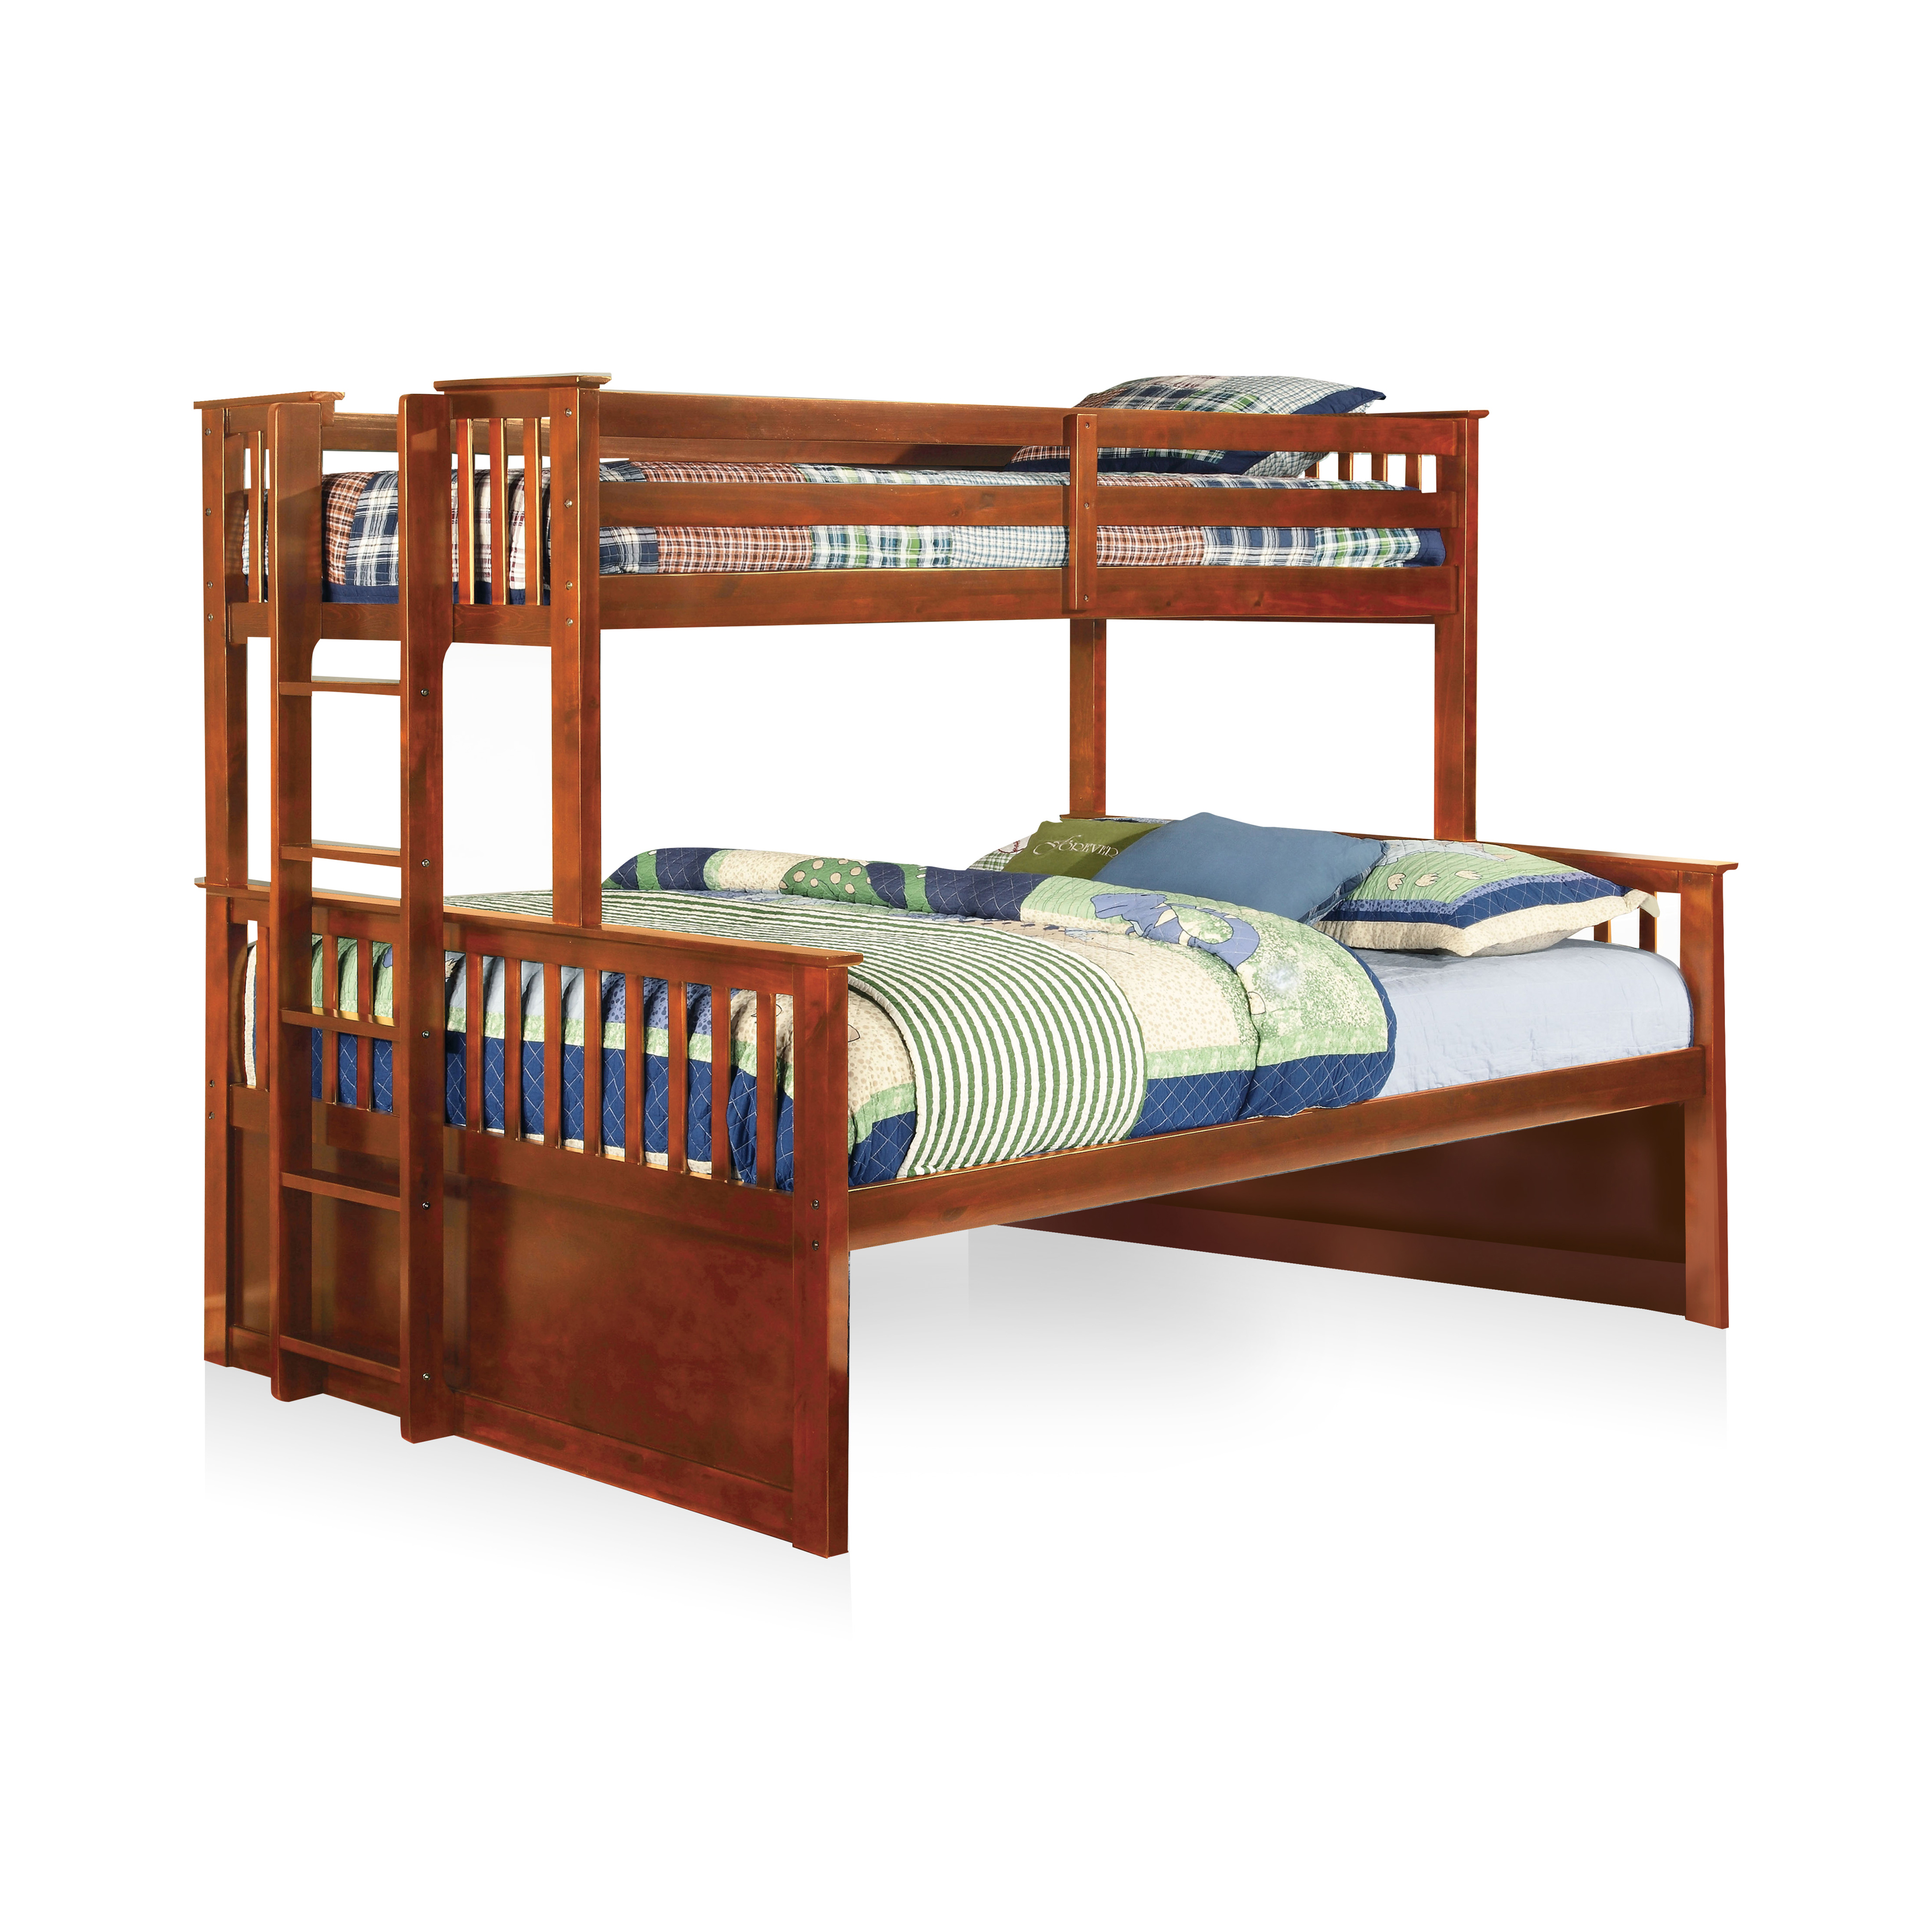 Confidence White Wood Bunk Beds For Kids Amazing Unique